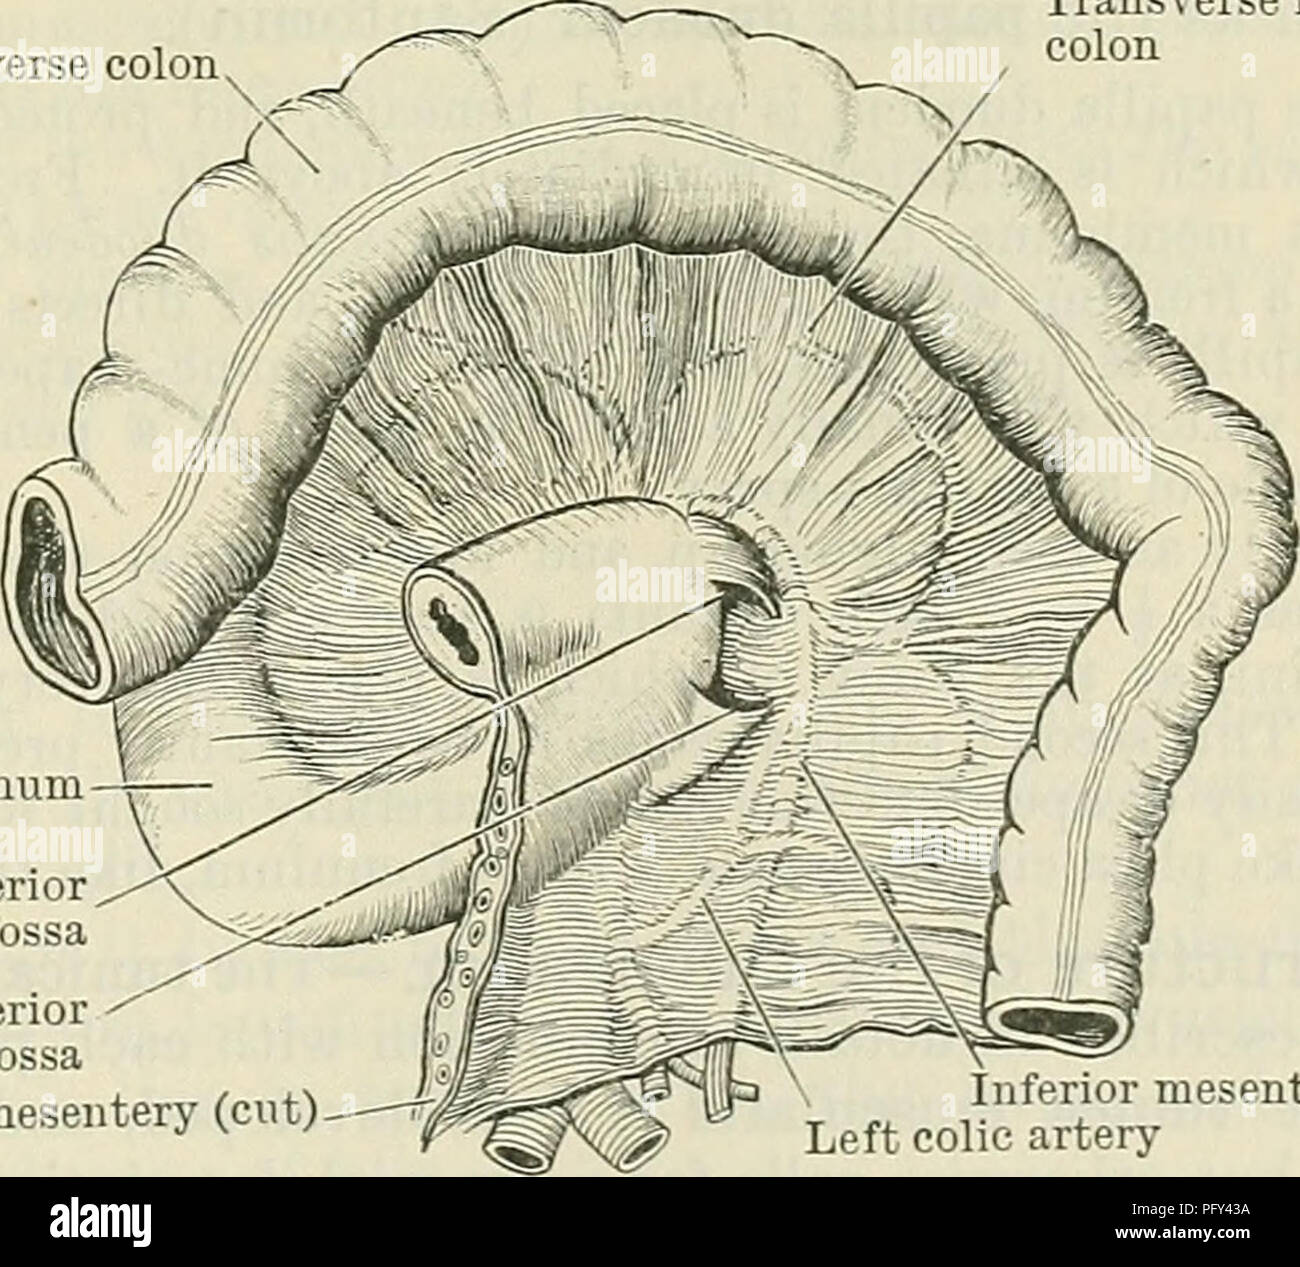 Cunninghams Text Book Of Anatomy Anatomy The Duodenum 1185 The